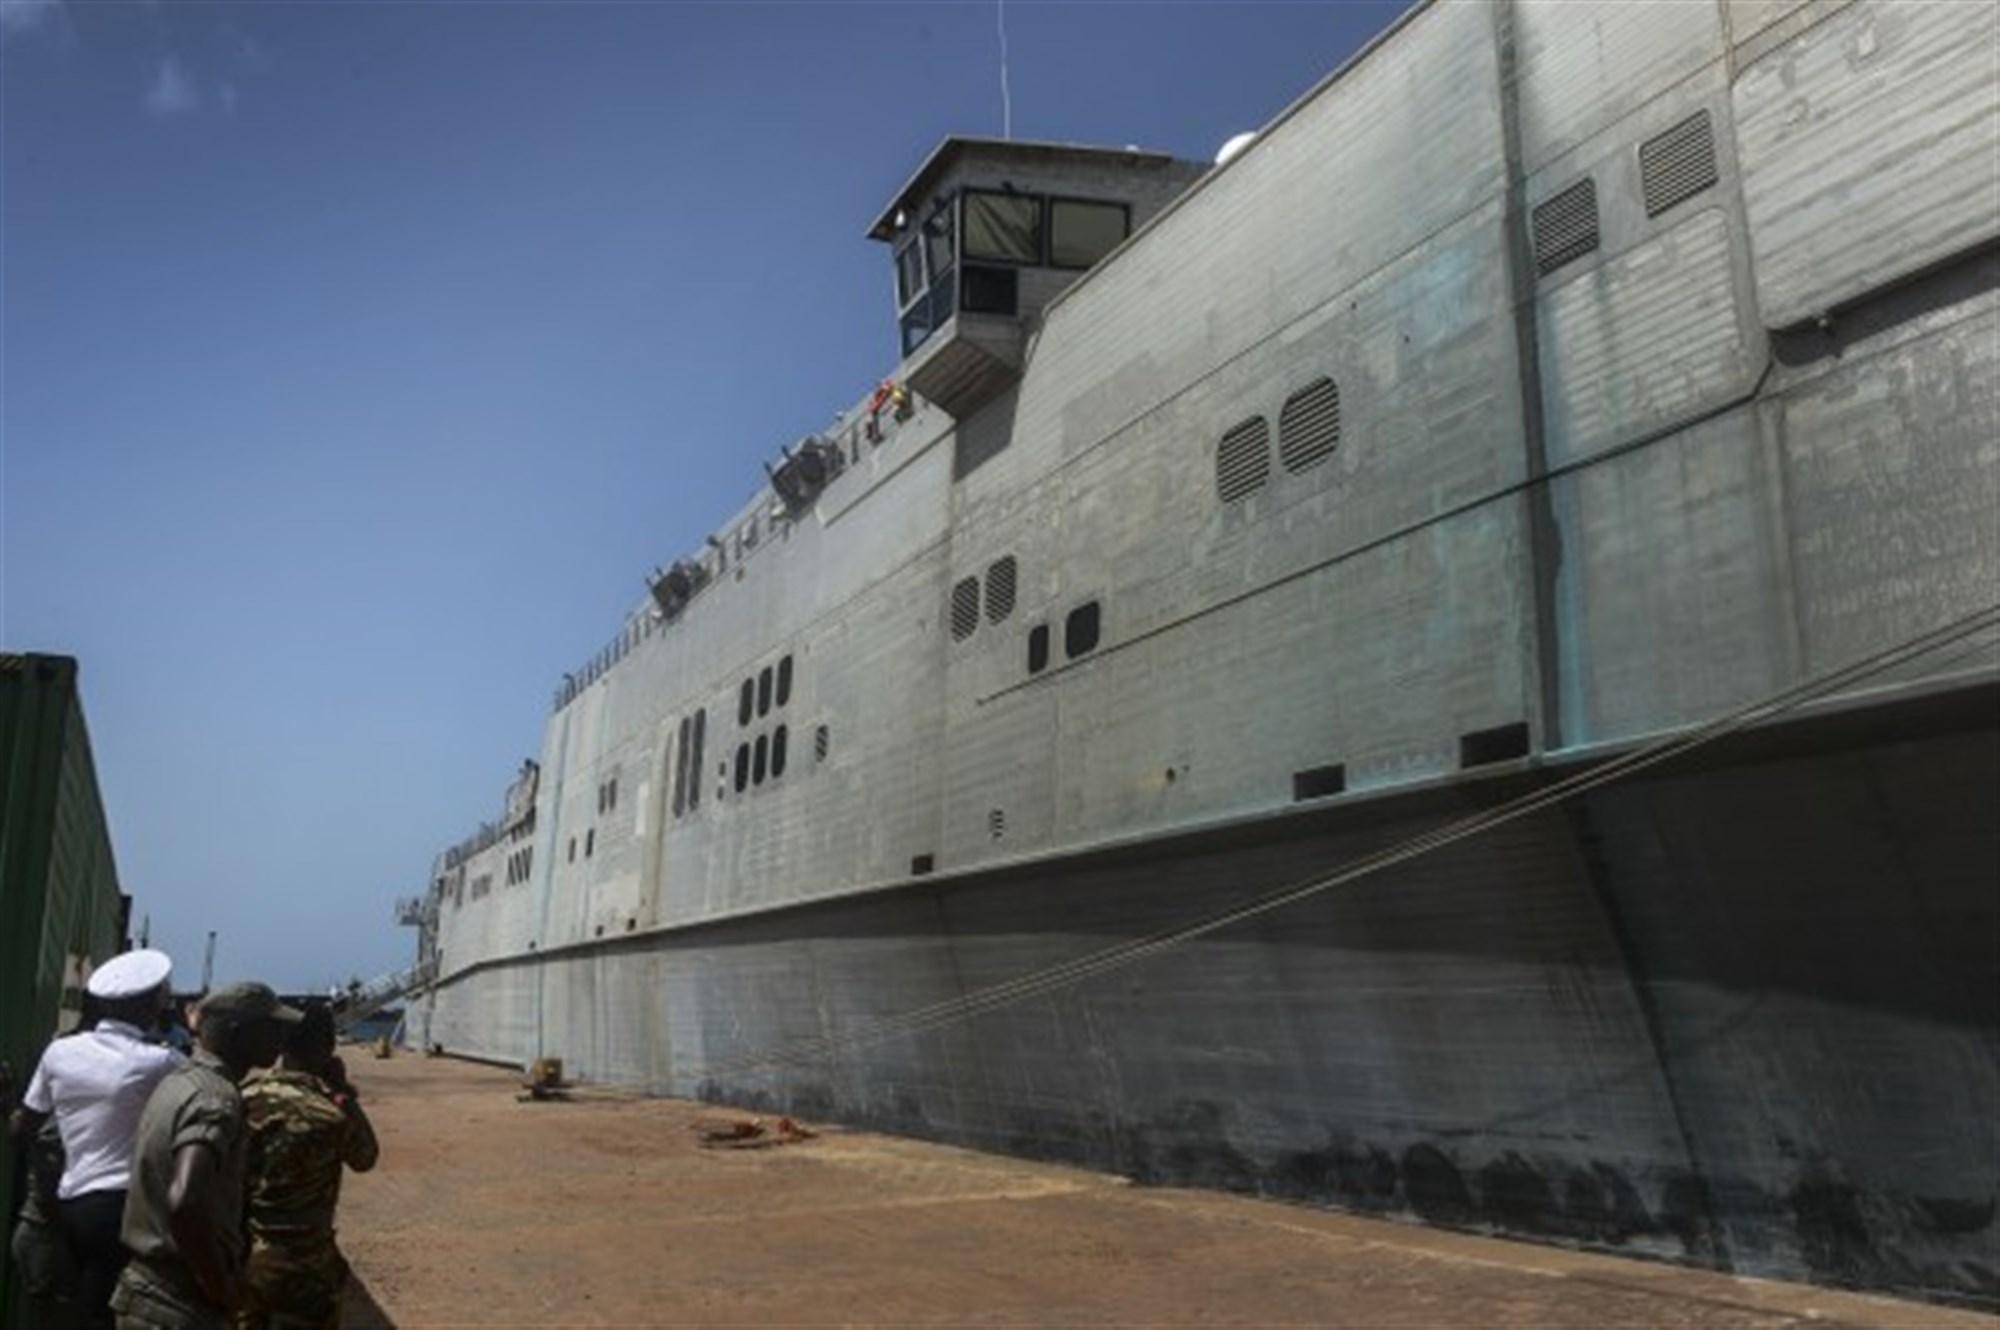 150406-N-RB579-025 PORT GENTIL, Gabon (April 6, 2015) The Military Sealift Command's joint high-speed vessel USNS Spearhead (JHSV 1) moored in Port Gentil, Gabon April 6, 2015. Spearhead is on a scheduled deployment to the U.S. 6th Fleet area of operations in support of the international collaborative capacity-building program Africa Partnership Station. (U.S. Navy photo by Mass Communication Specialist 1st Class Joshua Davies/Released)